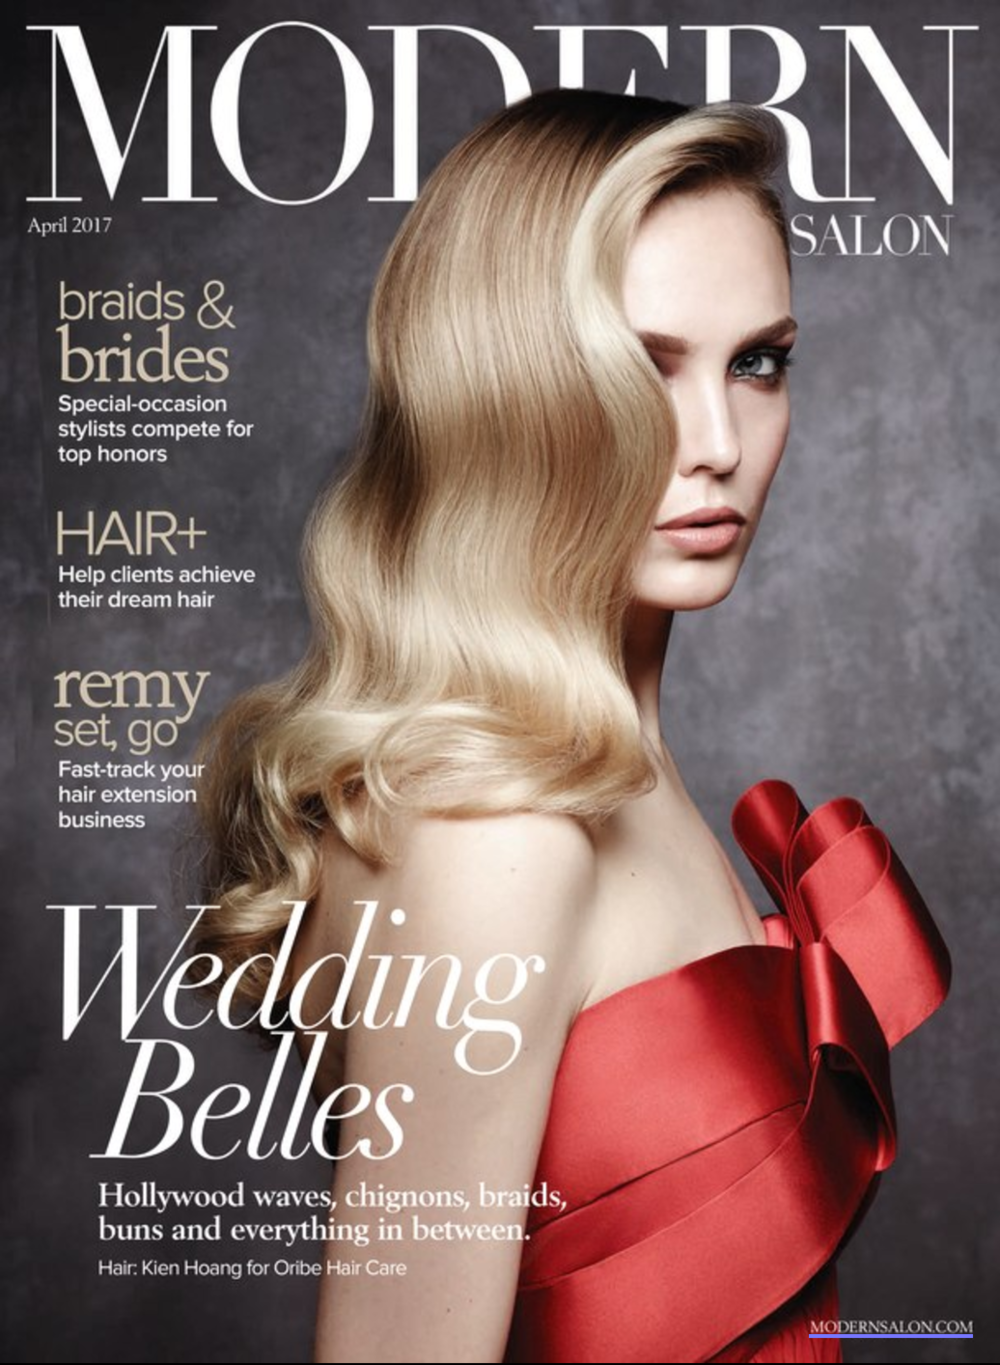 Modern Salon Cover | Hair By Kien Hoang for Oribe Hair Care | April 2017